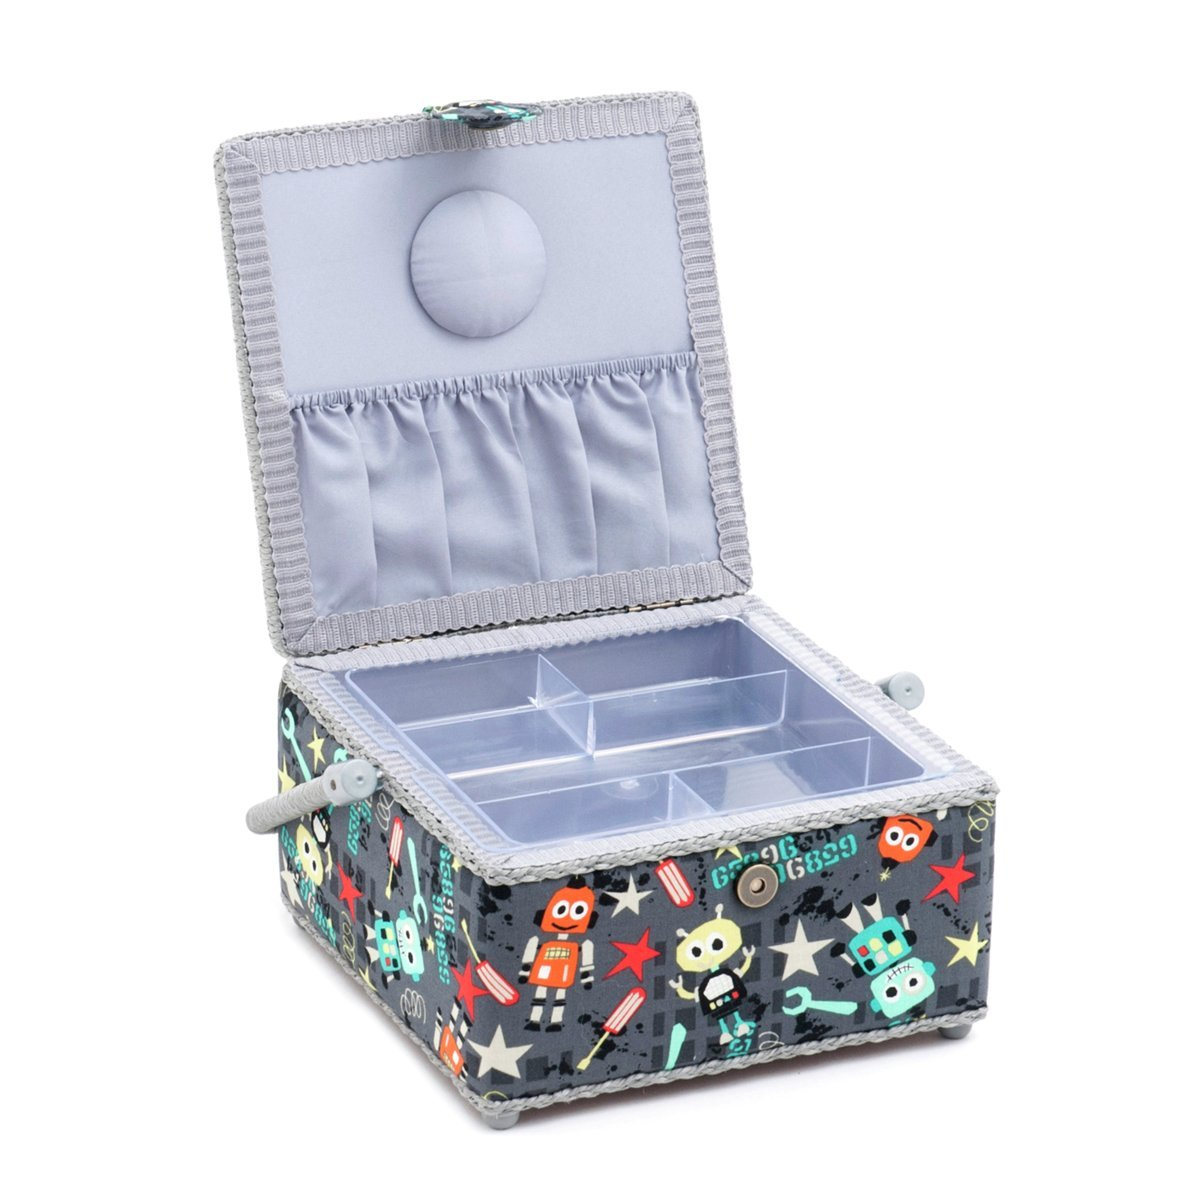 Hobby Gift 'Bot Boy' Medium Square Sewing Box 23 x 23 x 13cm (d/w/h)